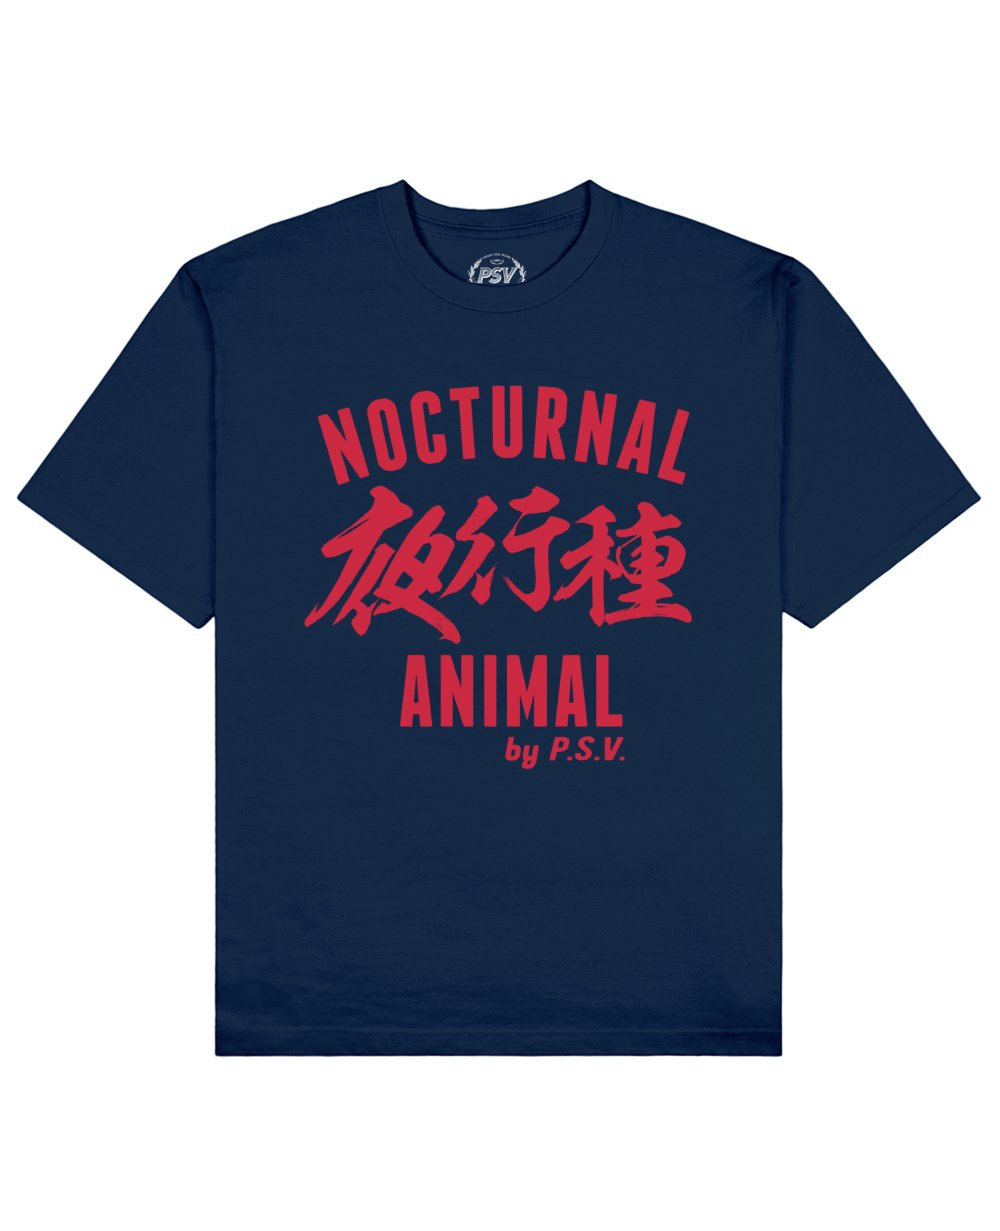 Nocturnal Animal Print T-Shirt in Blue - T-Shirts - PSV - BRANMA